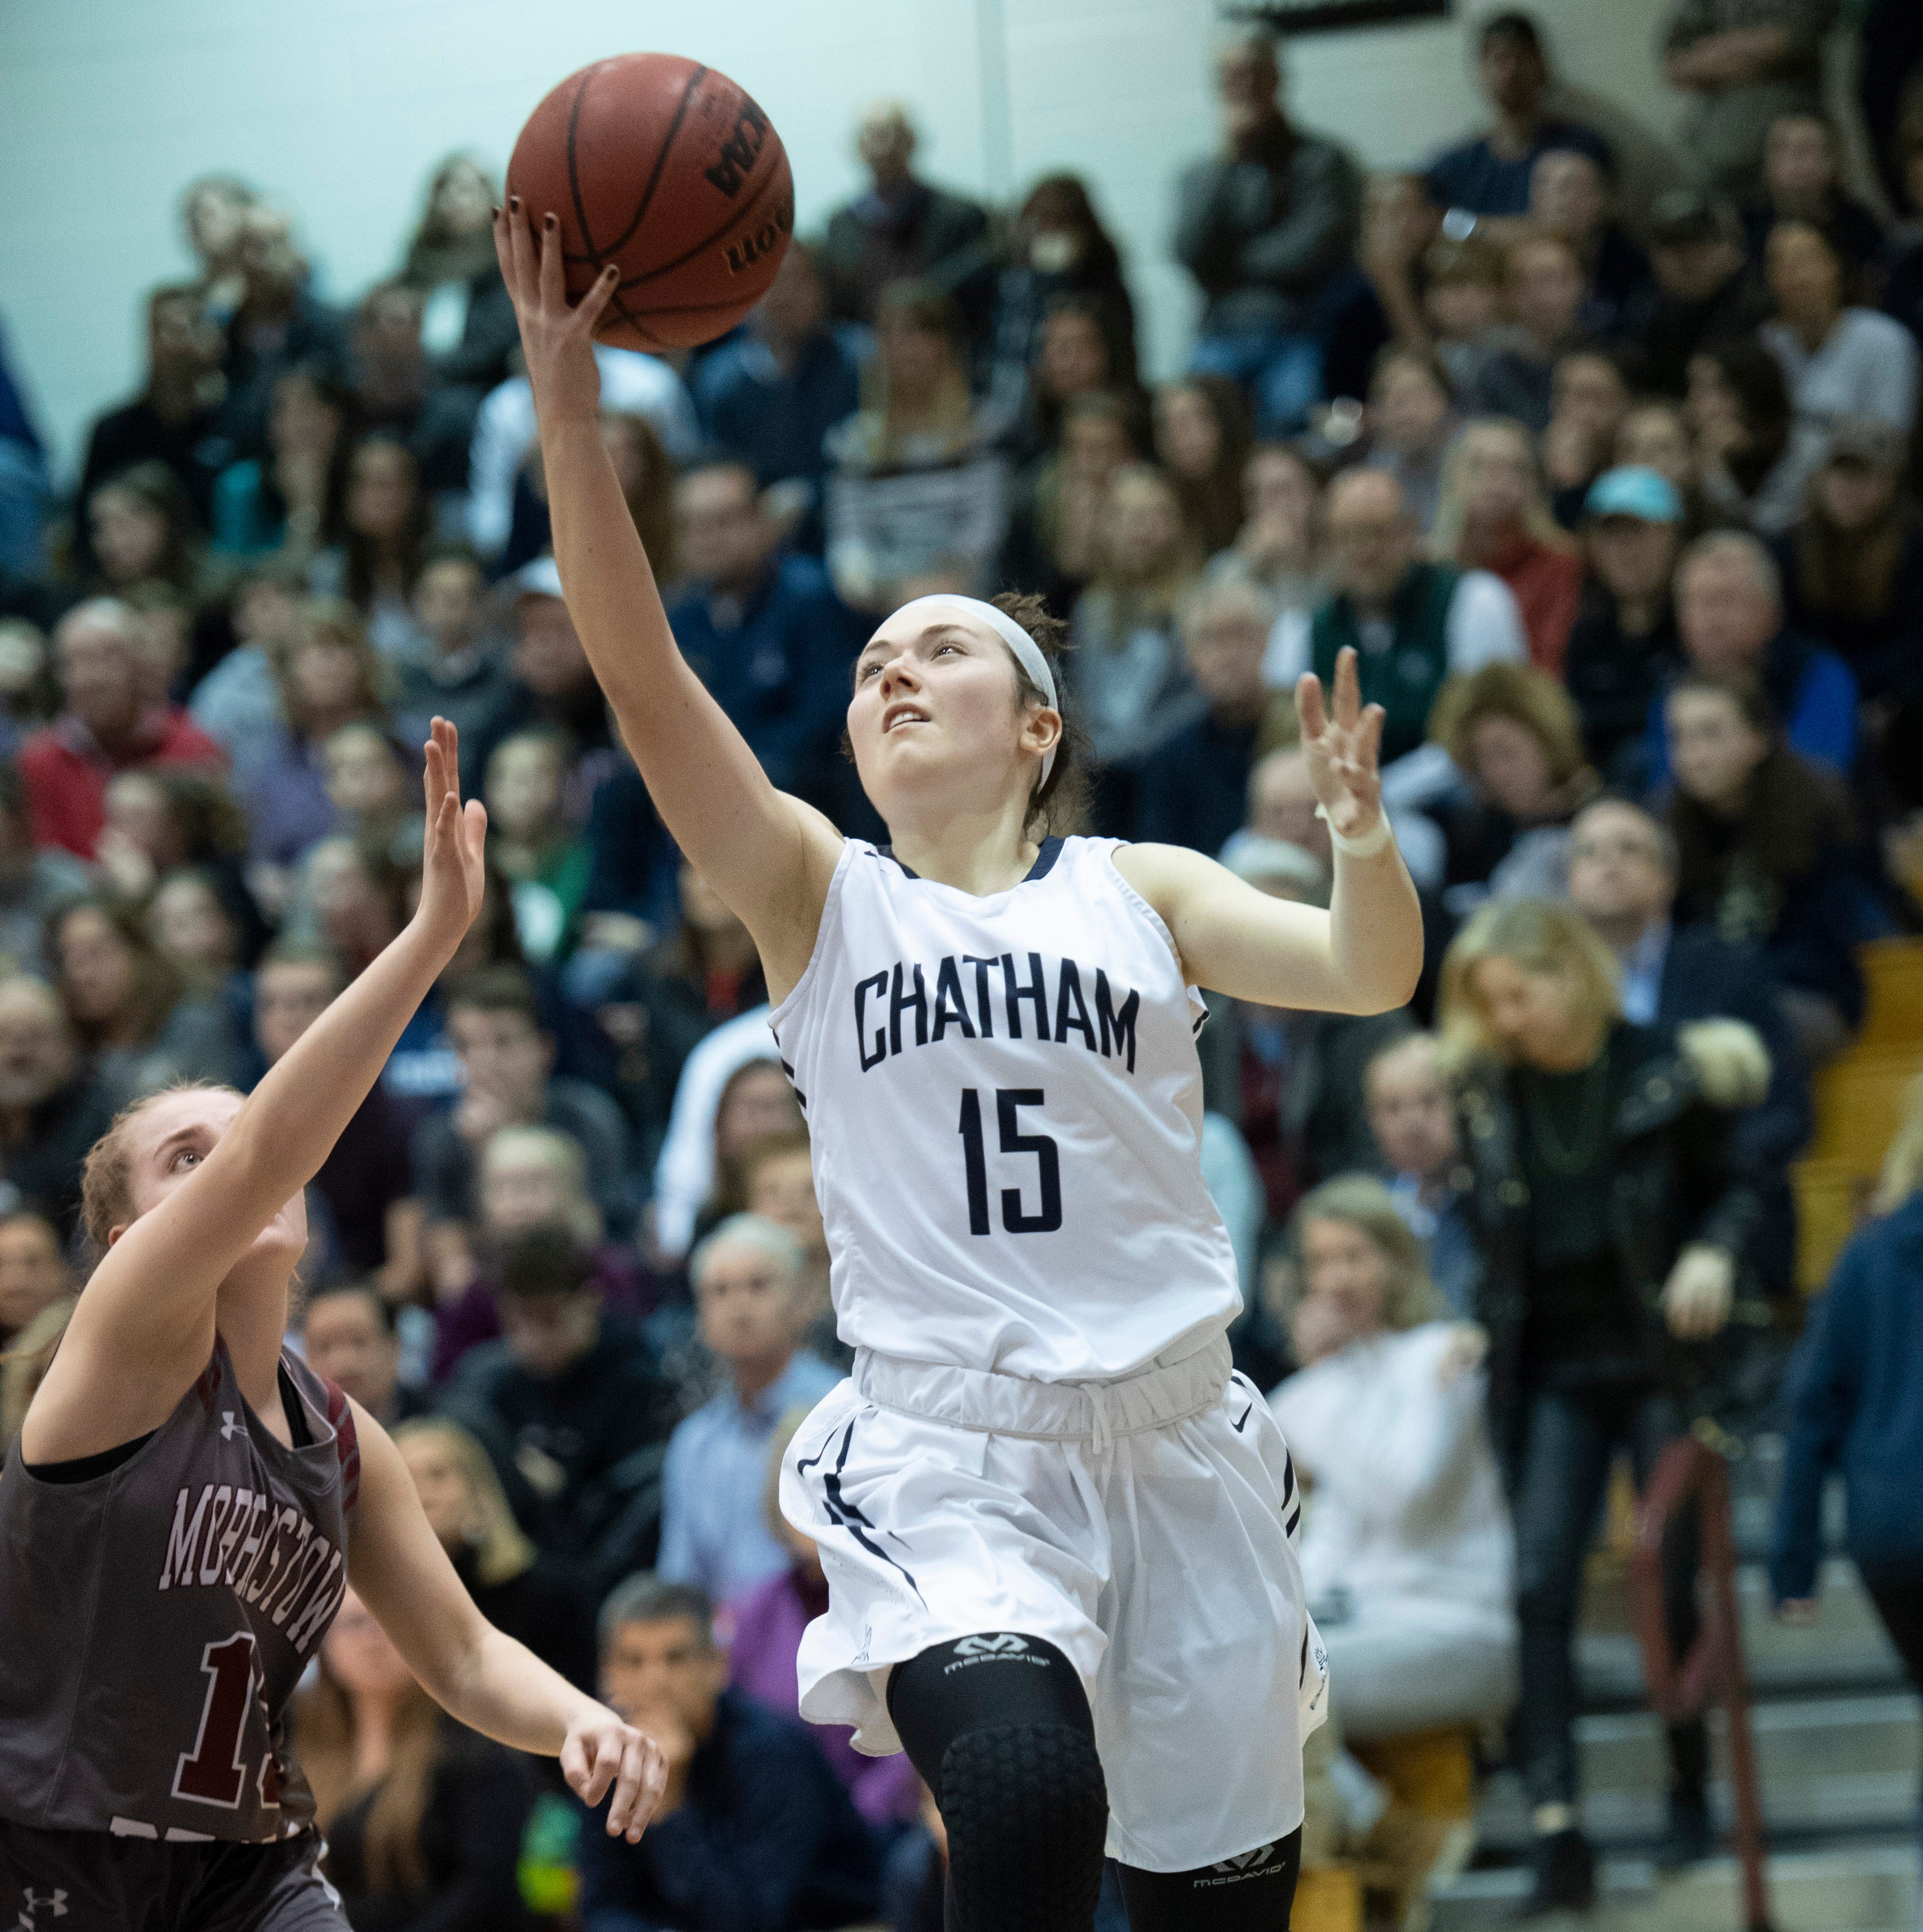 Chatham hoping to prolong 'very special' girls basketball season